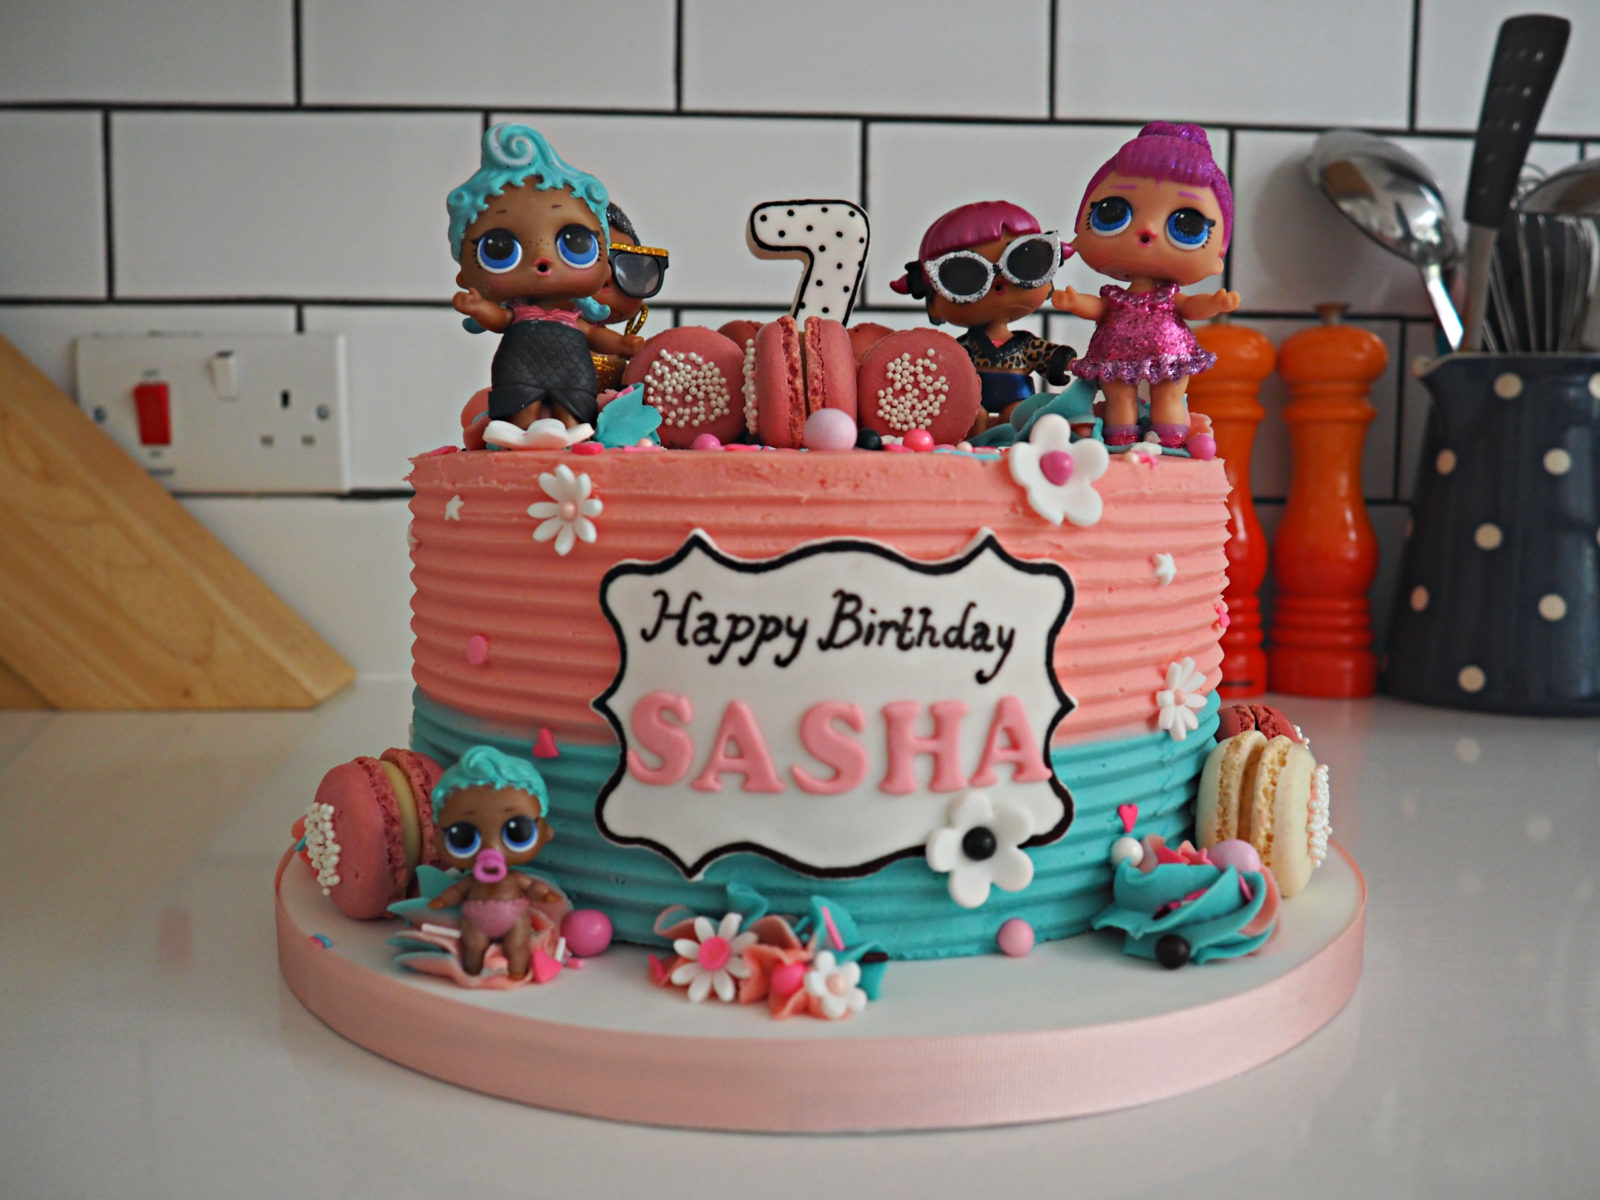 Sasha's 7th Birthday